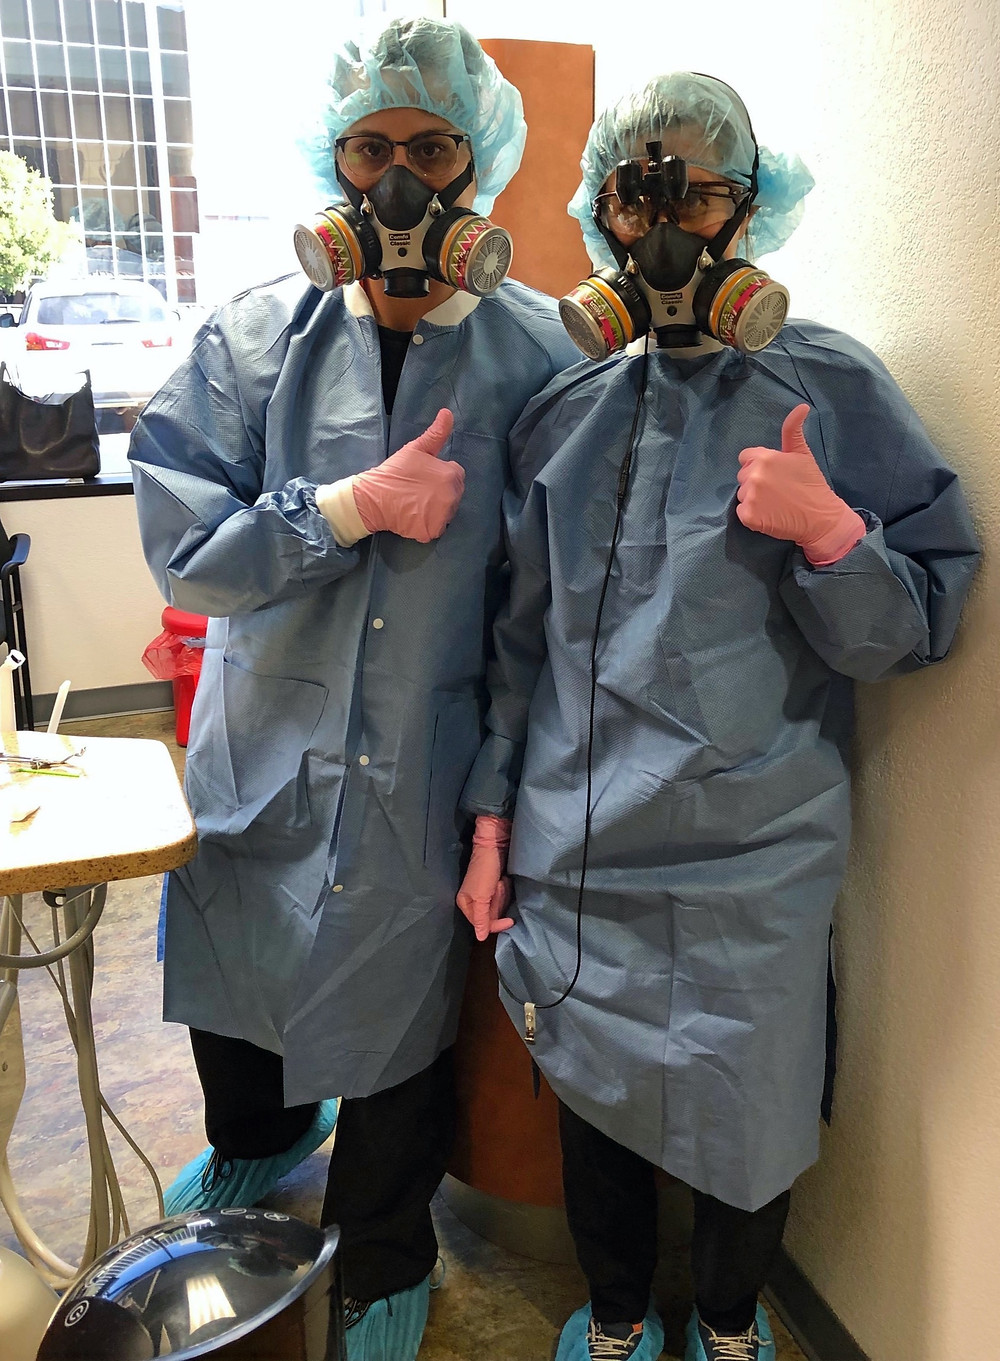 Personal Protective Equipment used in dental office to protect staff members and prevent patients from being exposed